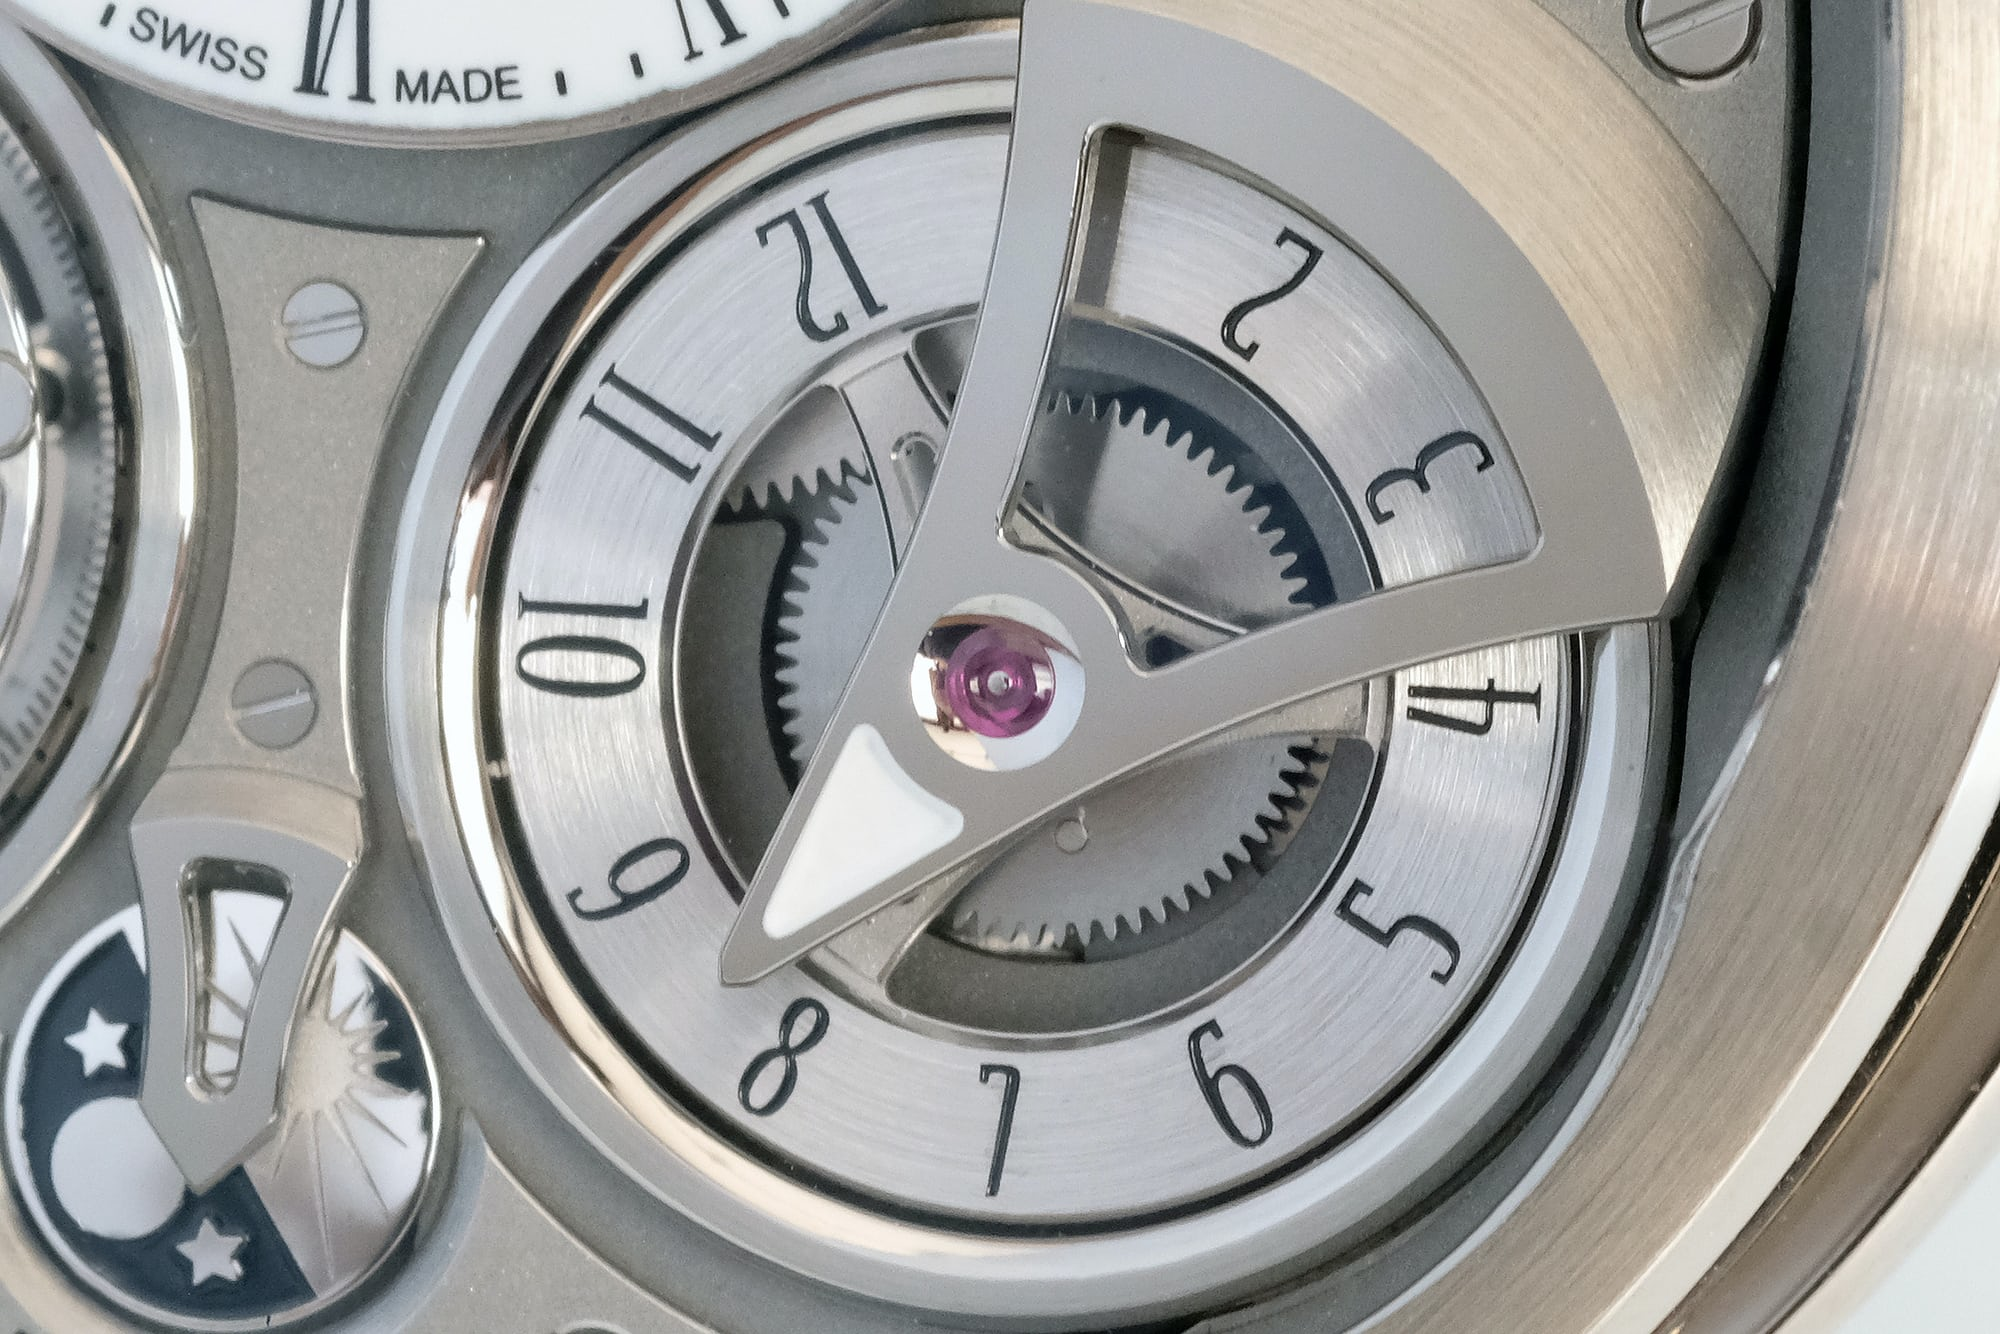 <p>The finishing on the GMT function is incredible.</p>